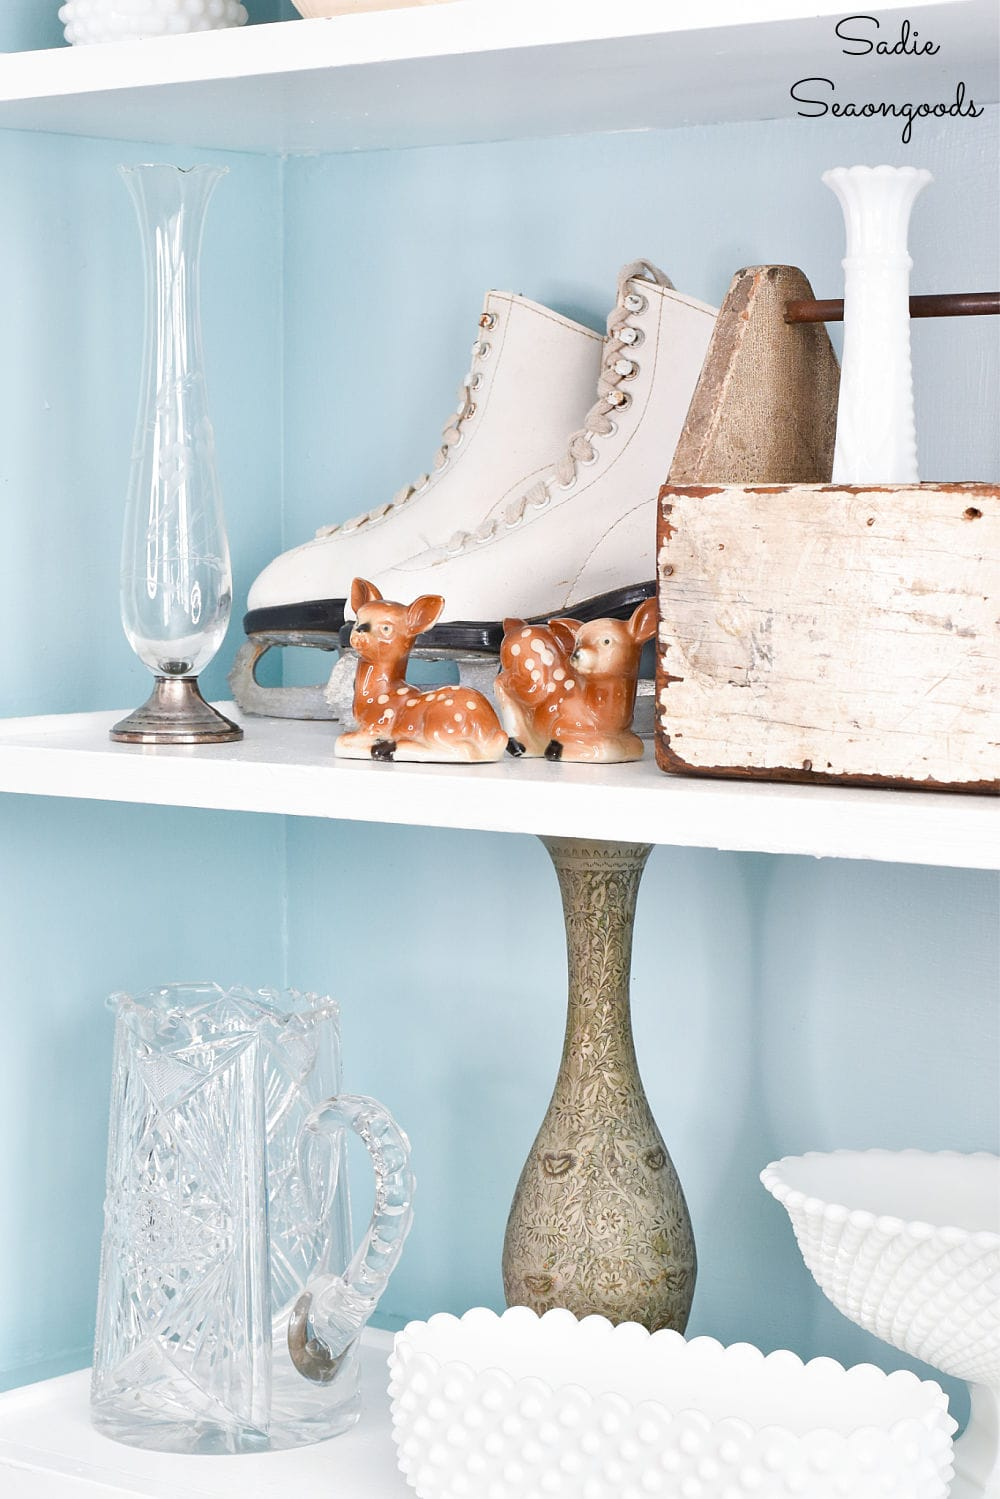 Winter decorating ideas with thrift store items